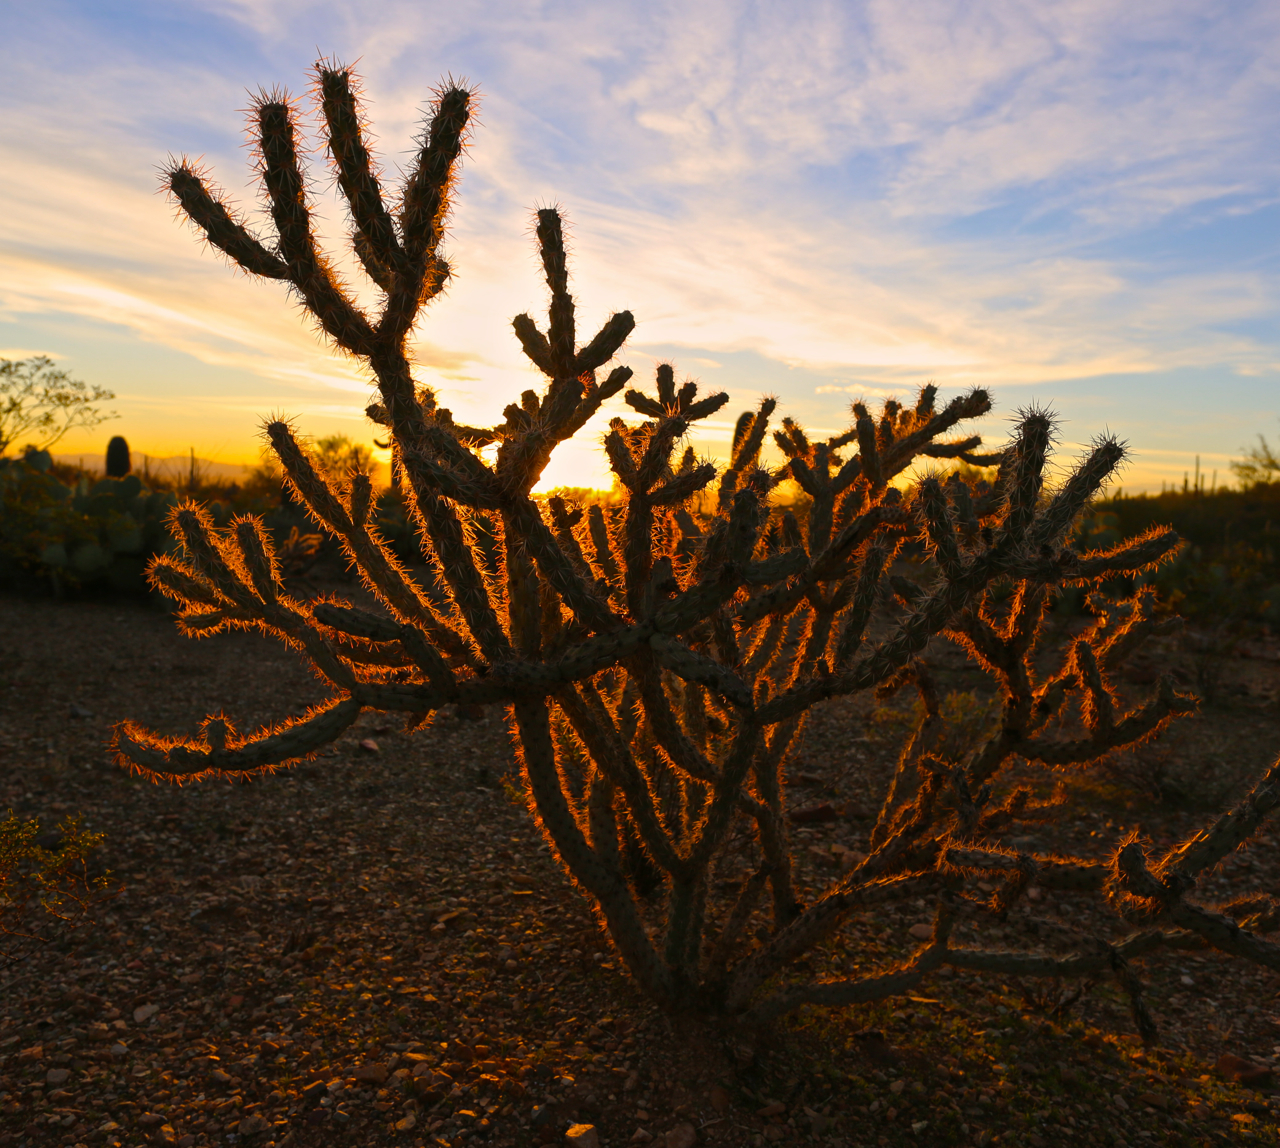 Another species of cacti - the Buckhorn Cholla, reflects a winter sunset.